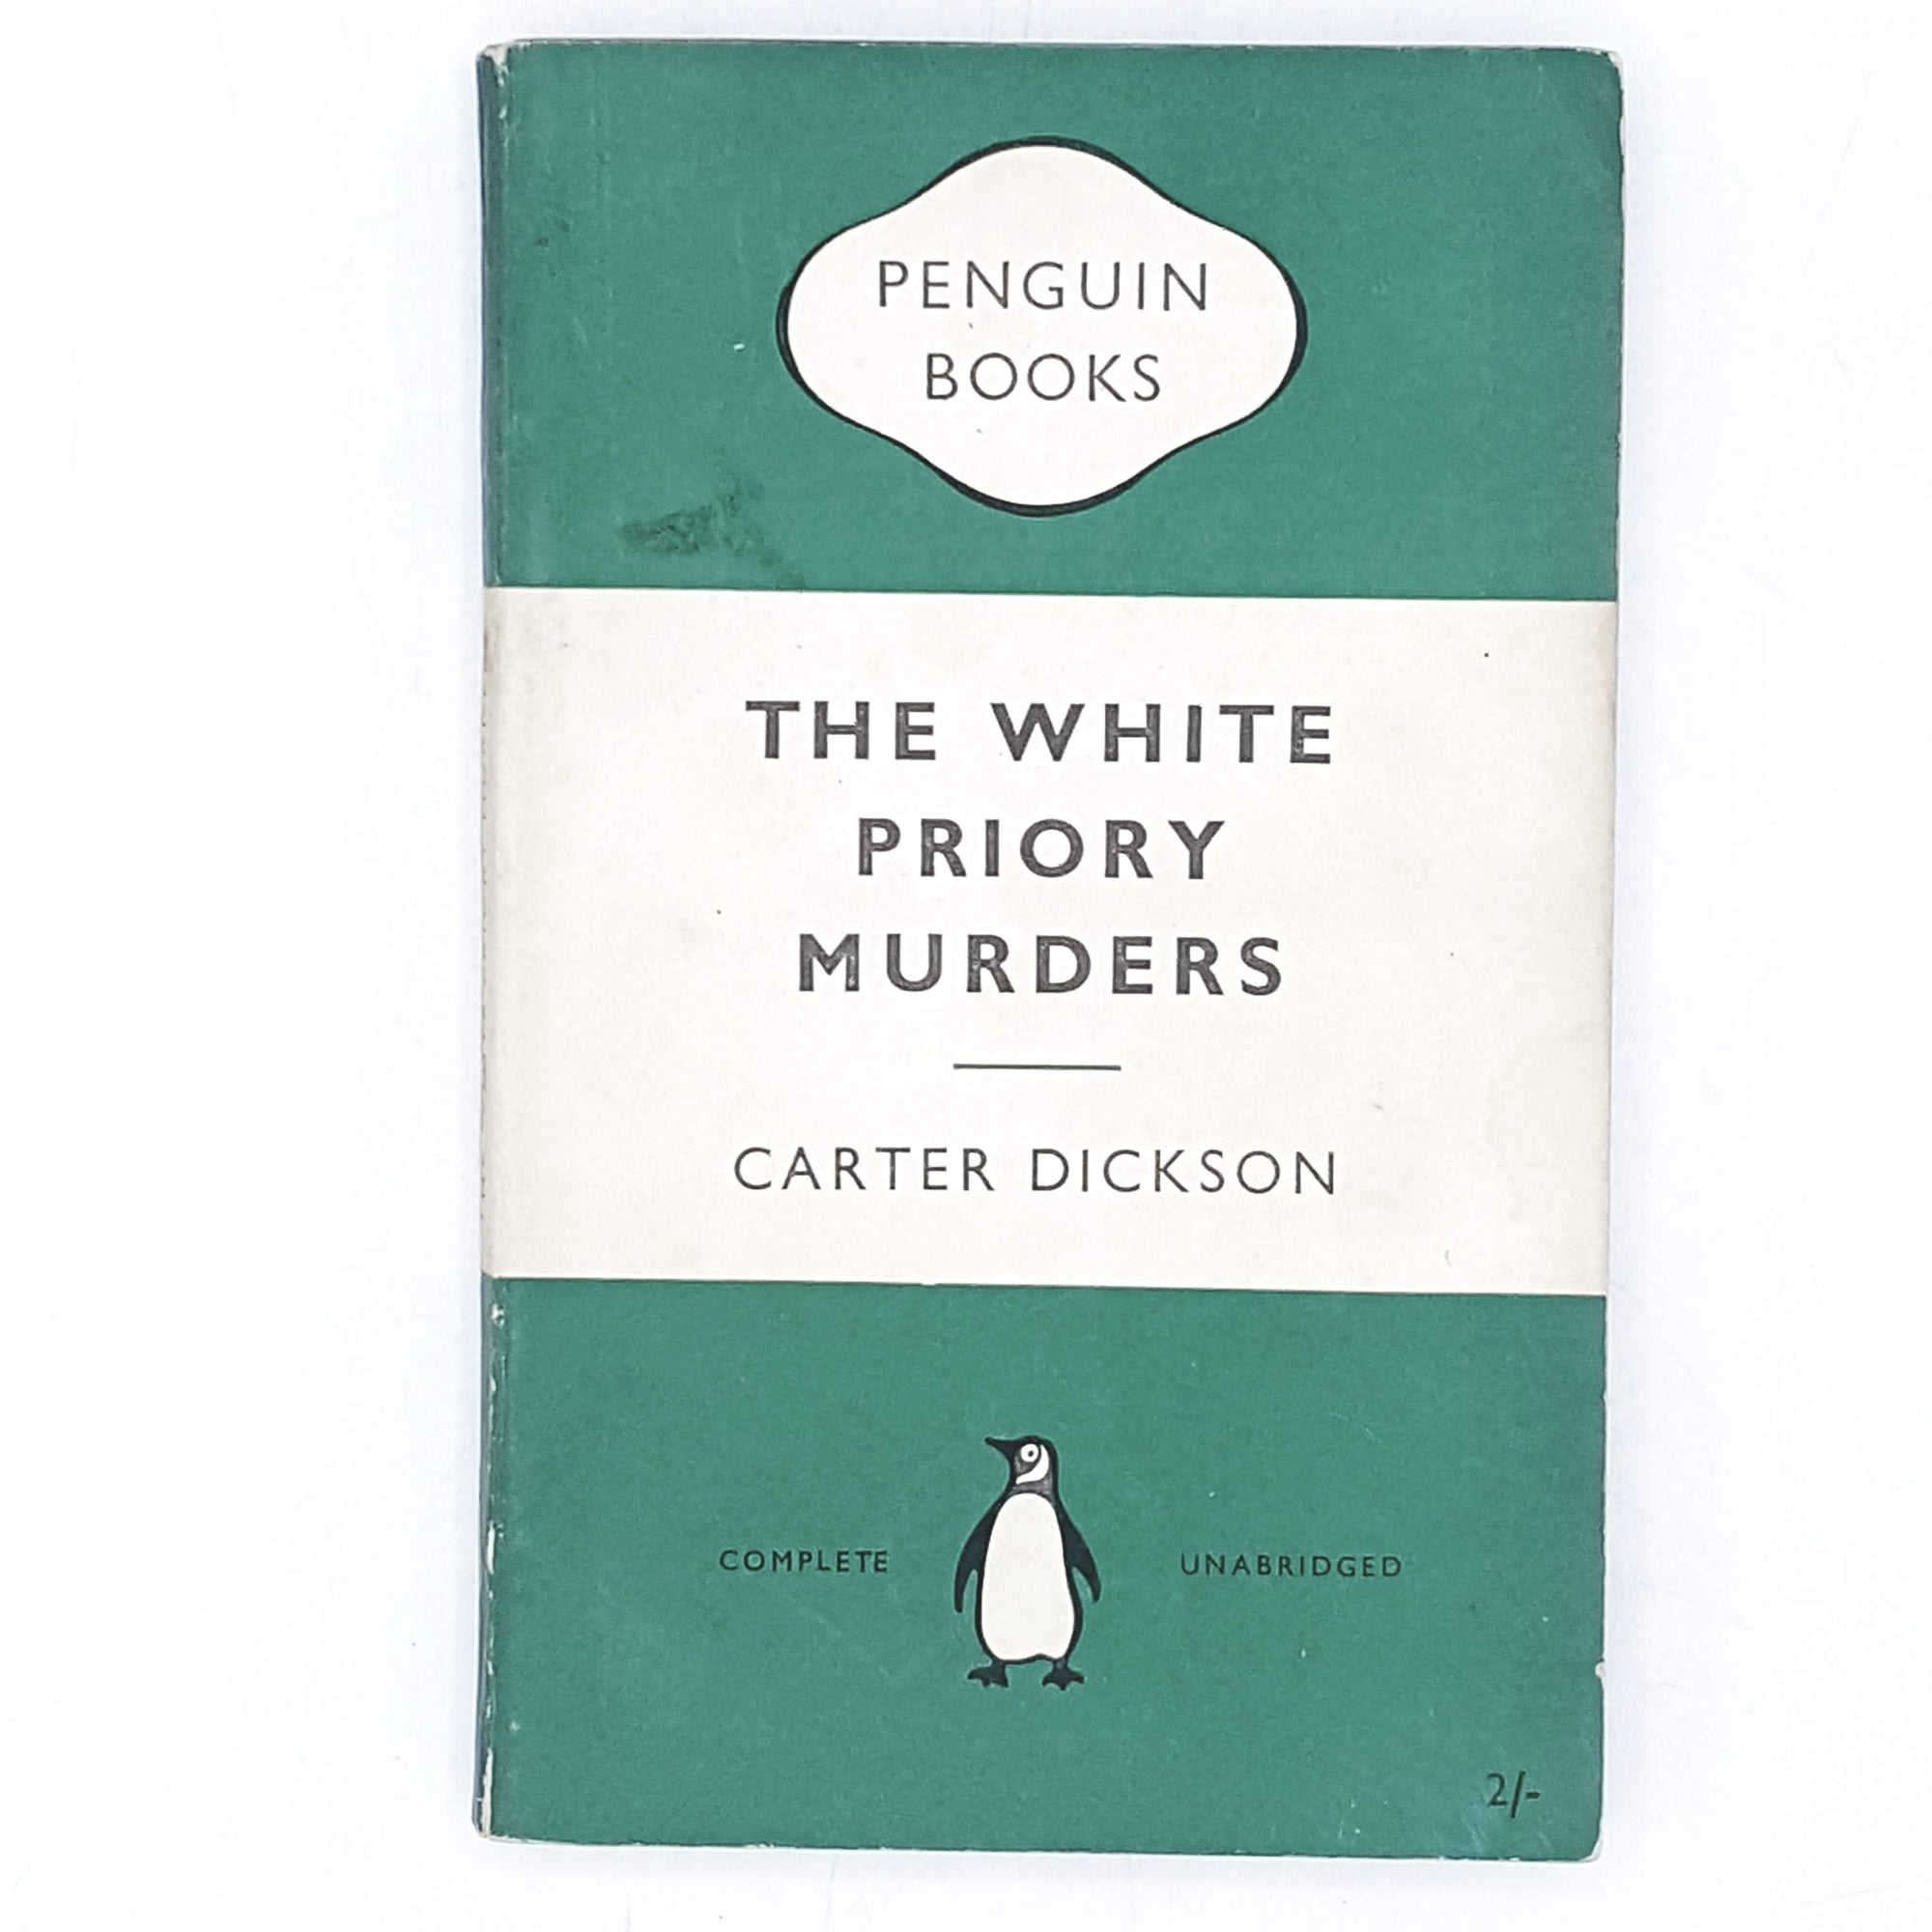 Vintage Penguin The White Priory Murders by Carter Dickson 1954